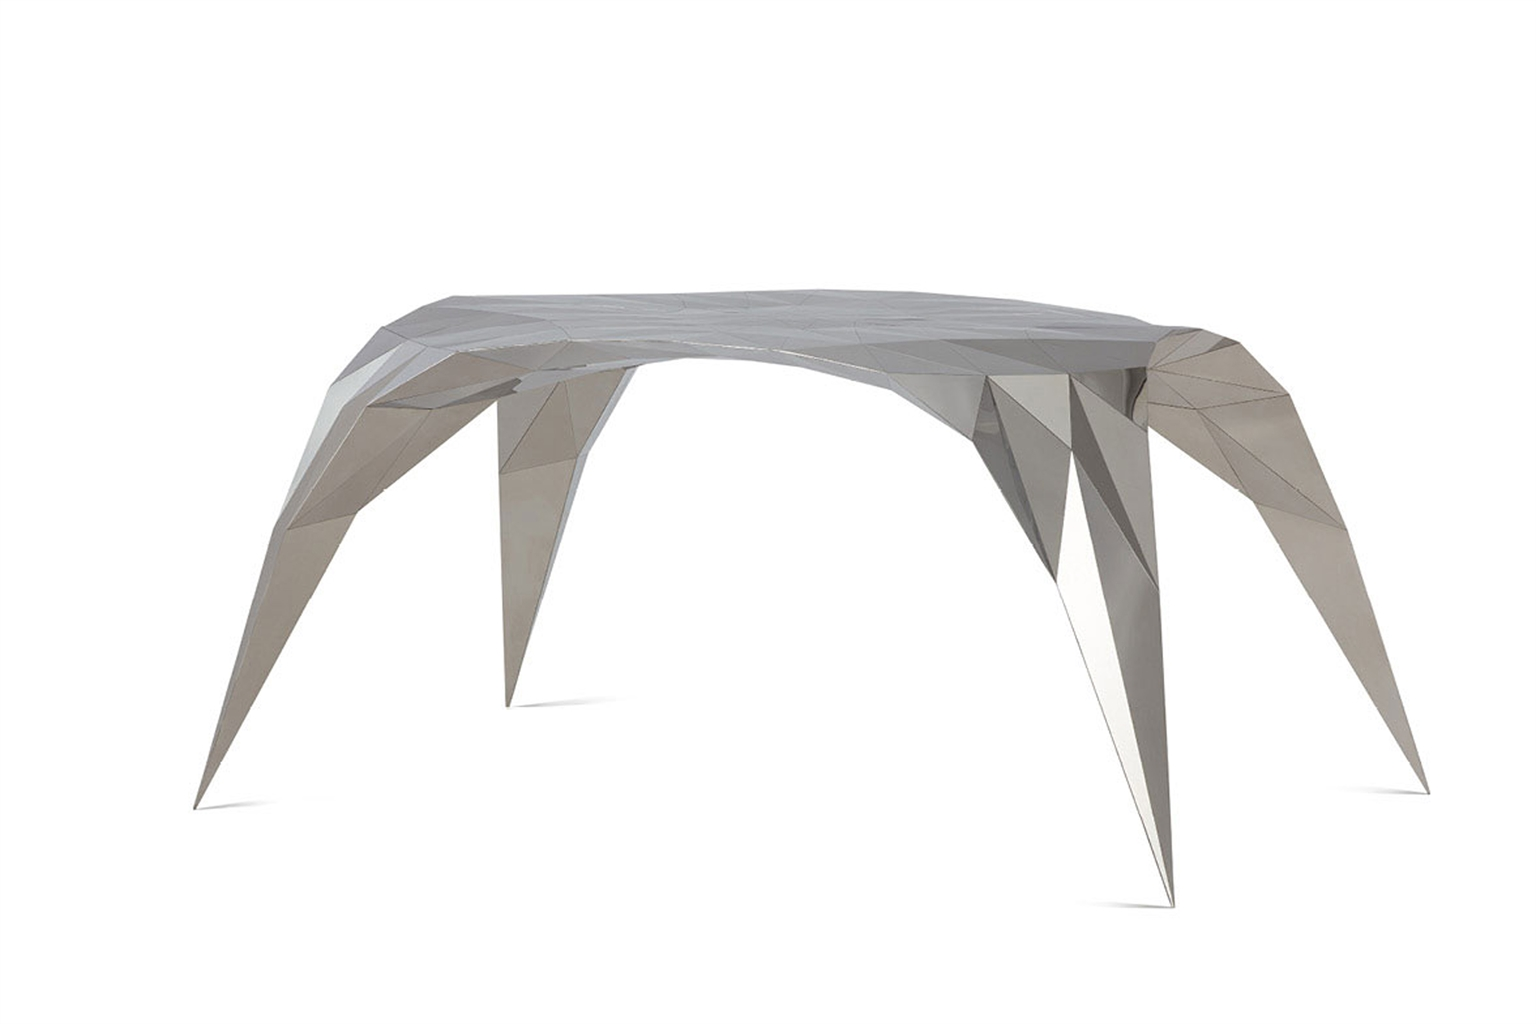 Zhang Zhouije - Arch Table-2011